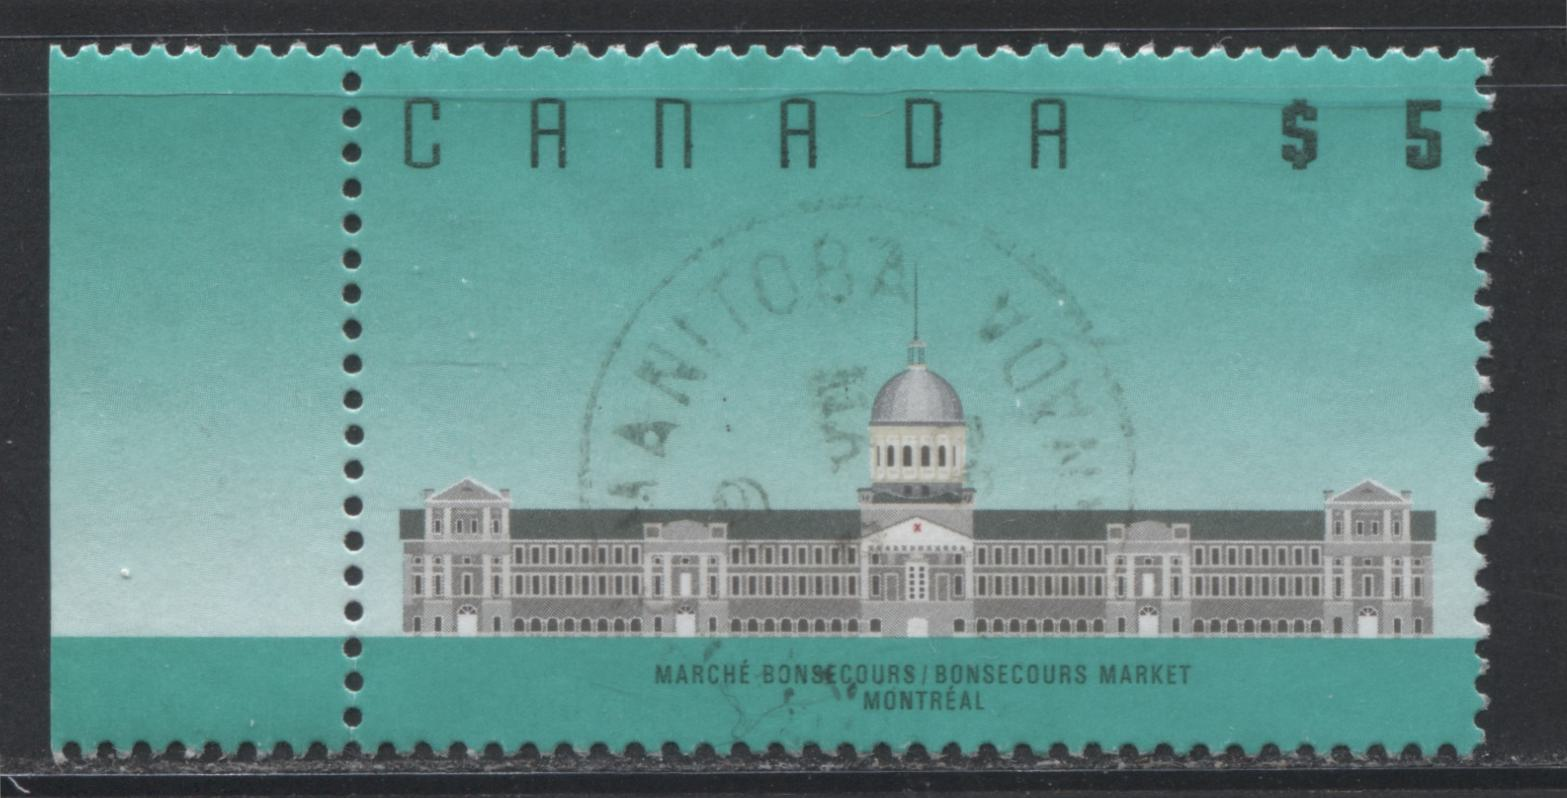 Canada #1183 $5 Bonsecours Market 1988-1991 Wildlife and Architecture Issue, a VF Used Example on Peterborough Paper With a July 8, 1992 CDS Cancel